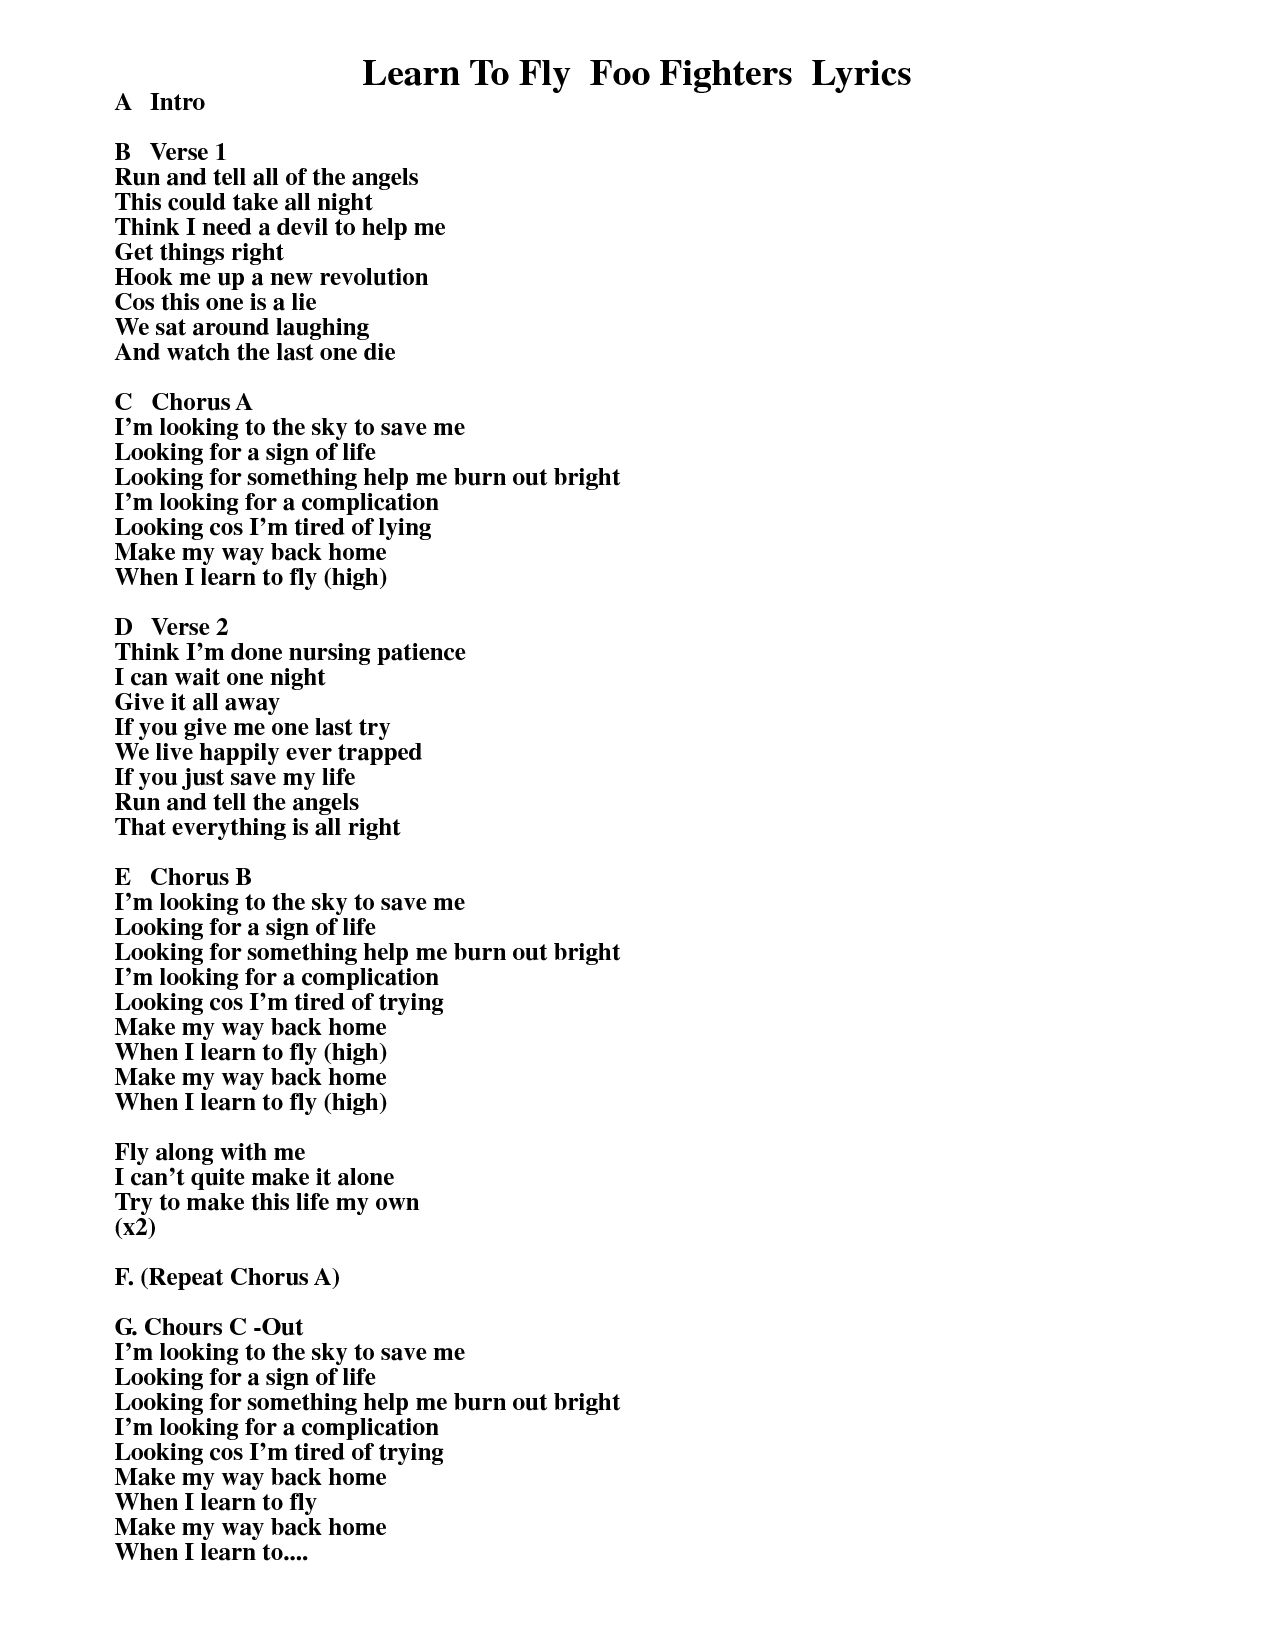 Tom Petty - Learning To Fly Lyrics | MetroLyrics